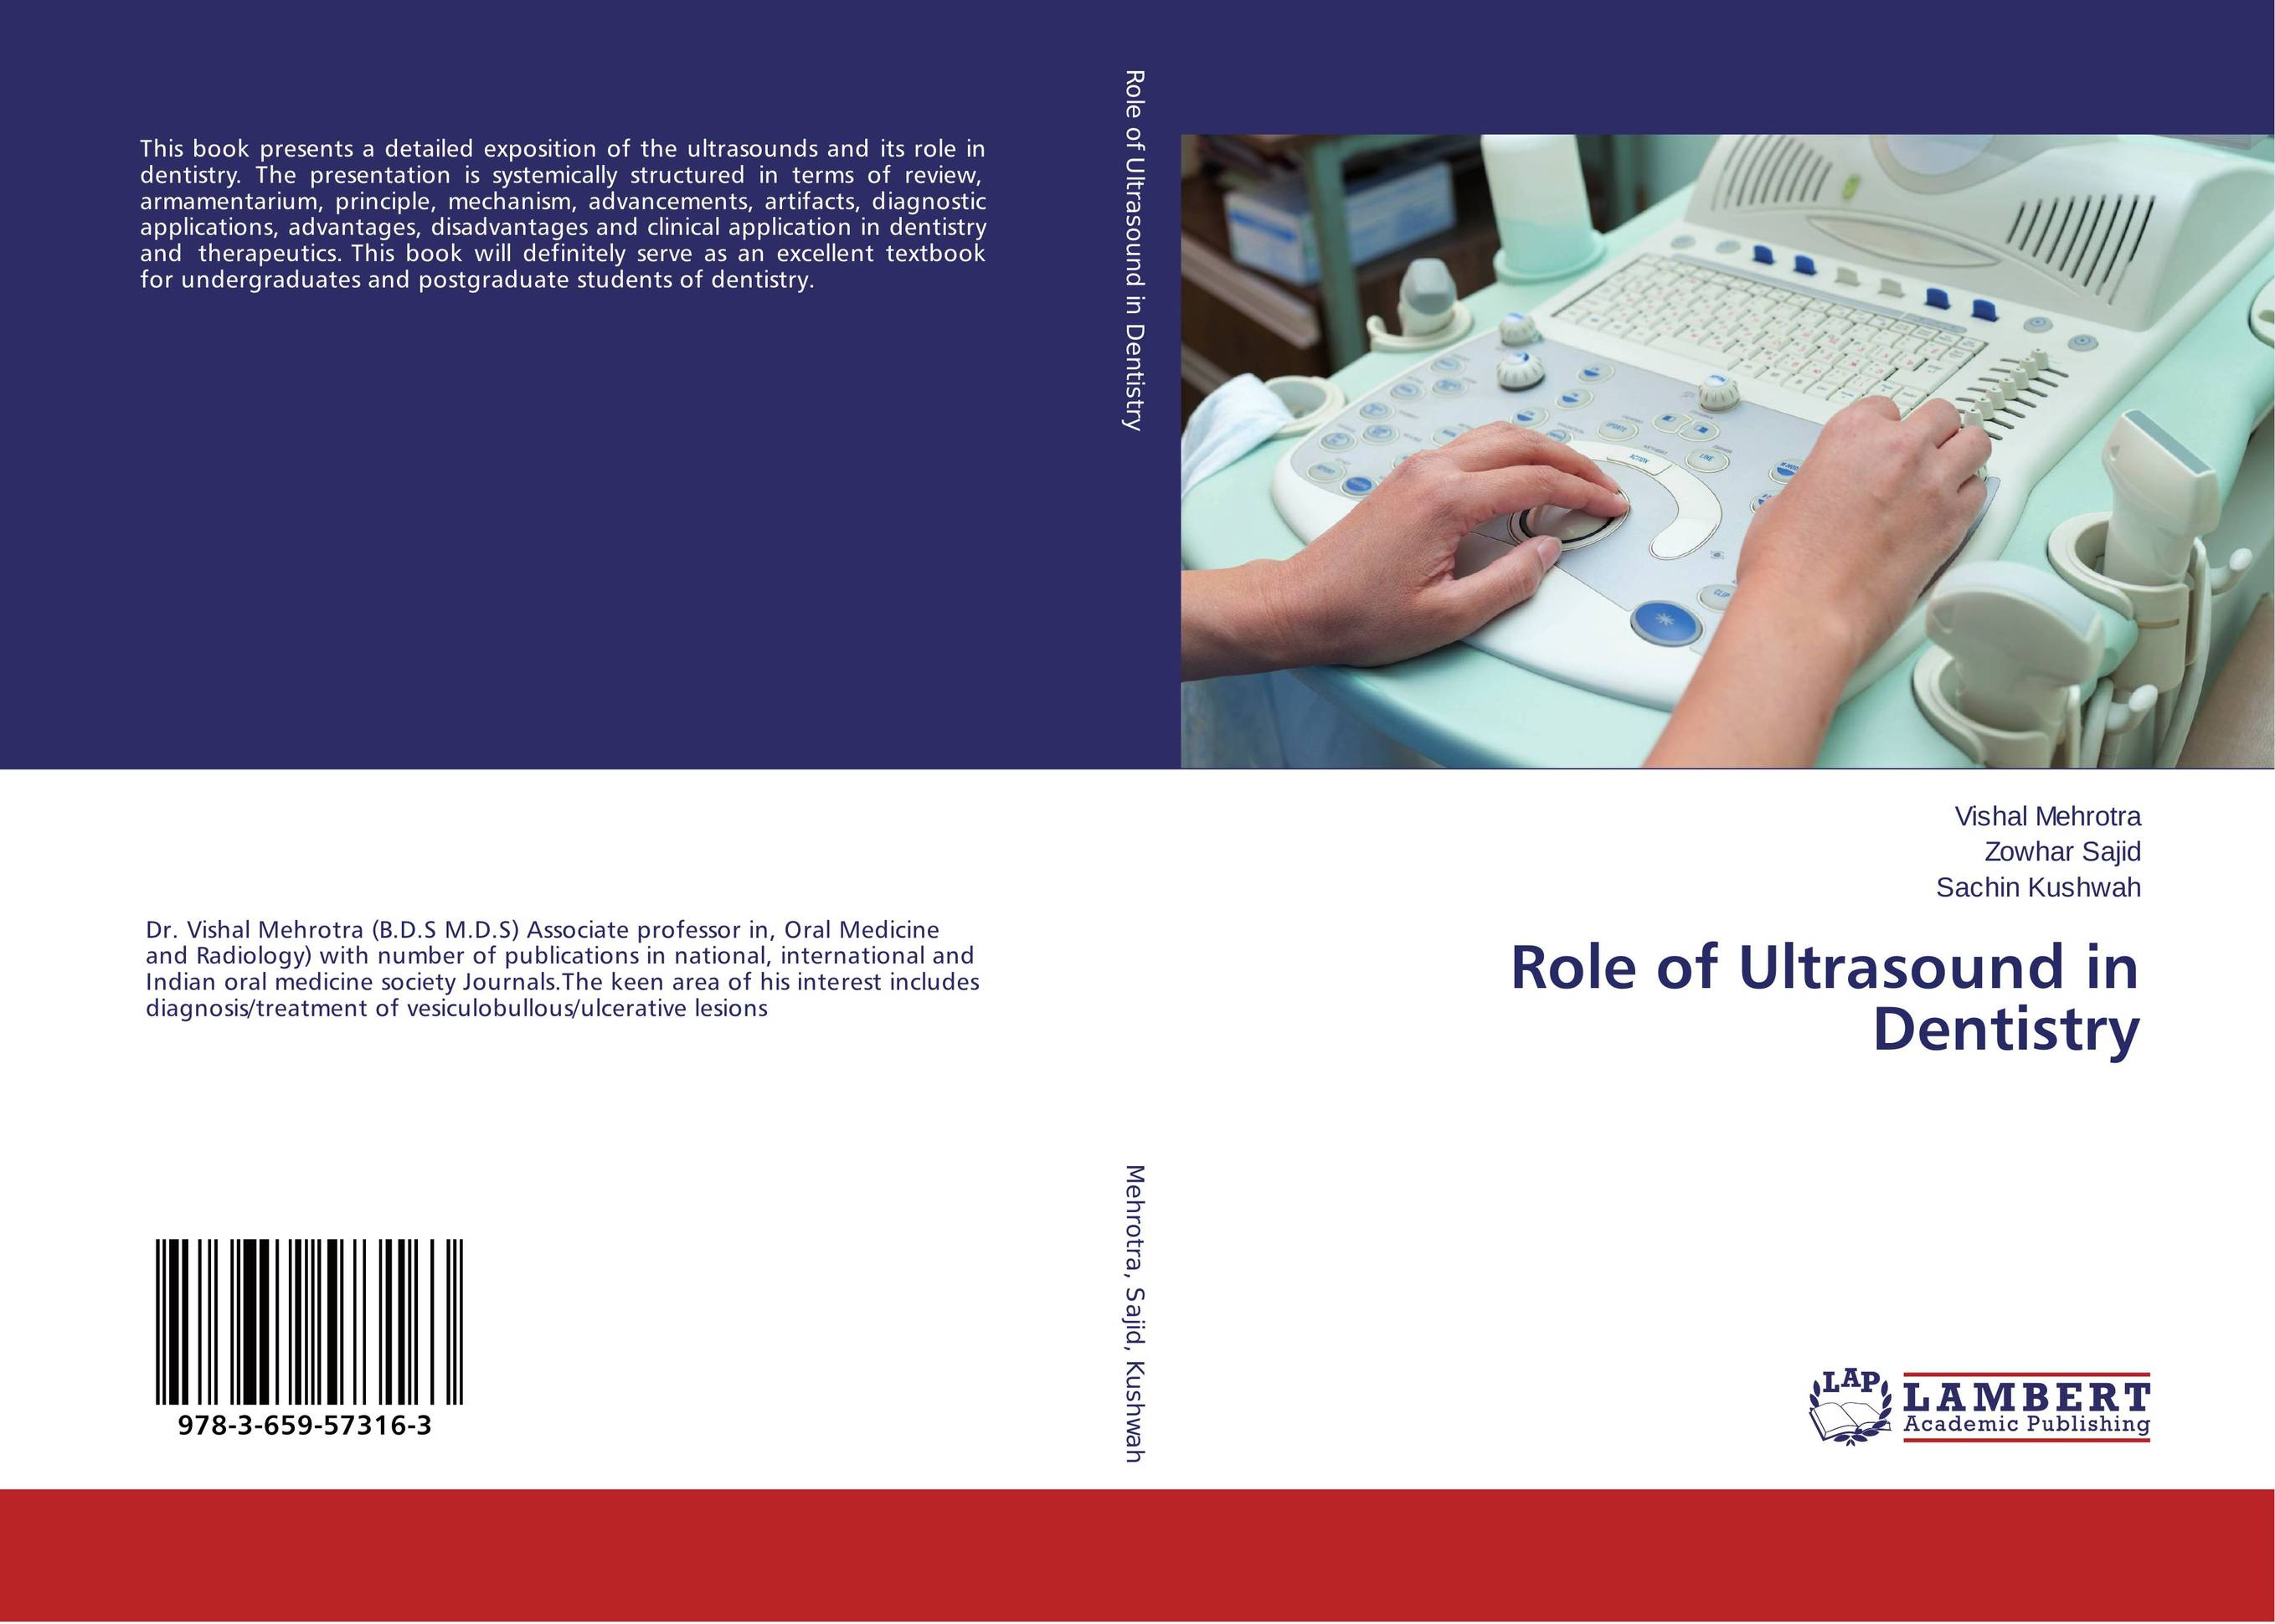 Role of Ultrasound in Dentistry role of ultrasound in dentistry